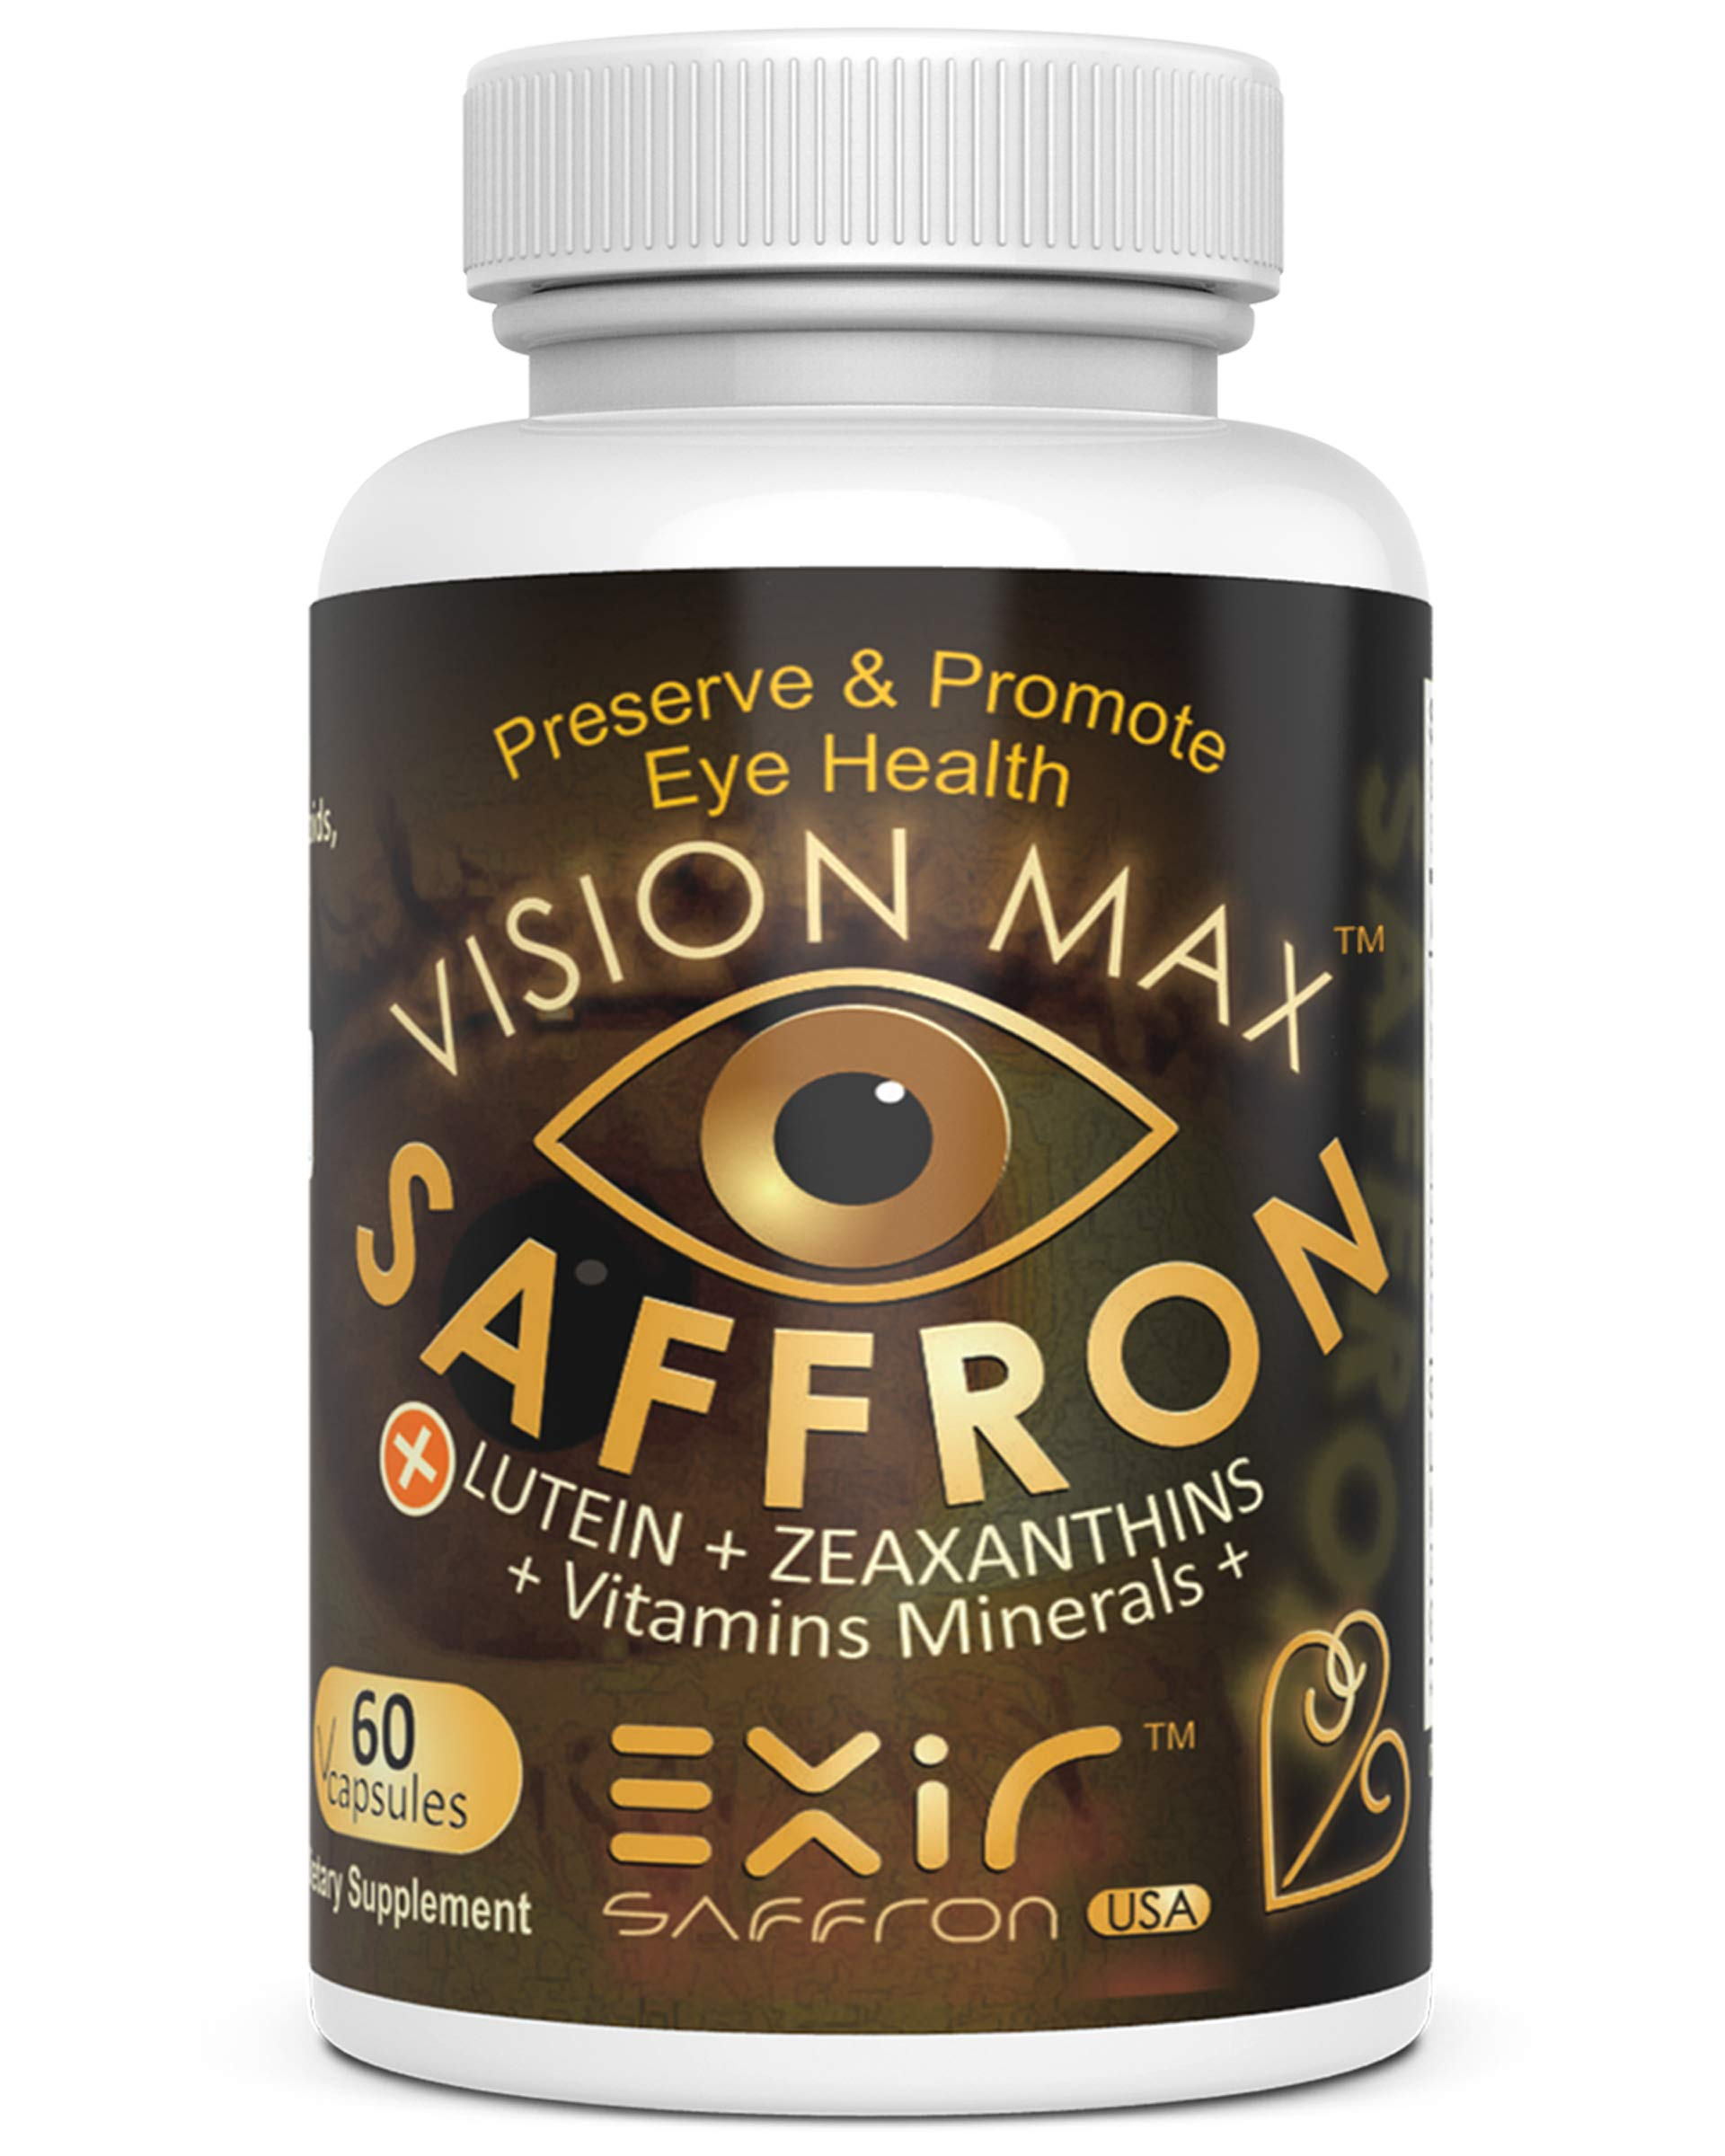 Vision MaxTM Saffron + Zeaxanthin Meso-Zeaxanthin Lutein Grape Seed Extract Plus AREDS2 Vitamin Minerals 60-Capsules | Potent Unique Eye & Vision Supplement